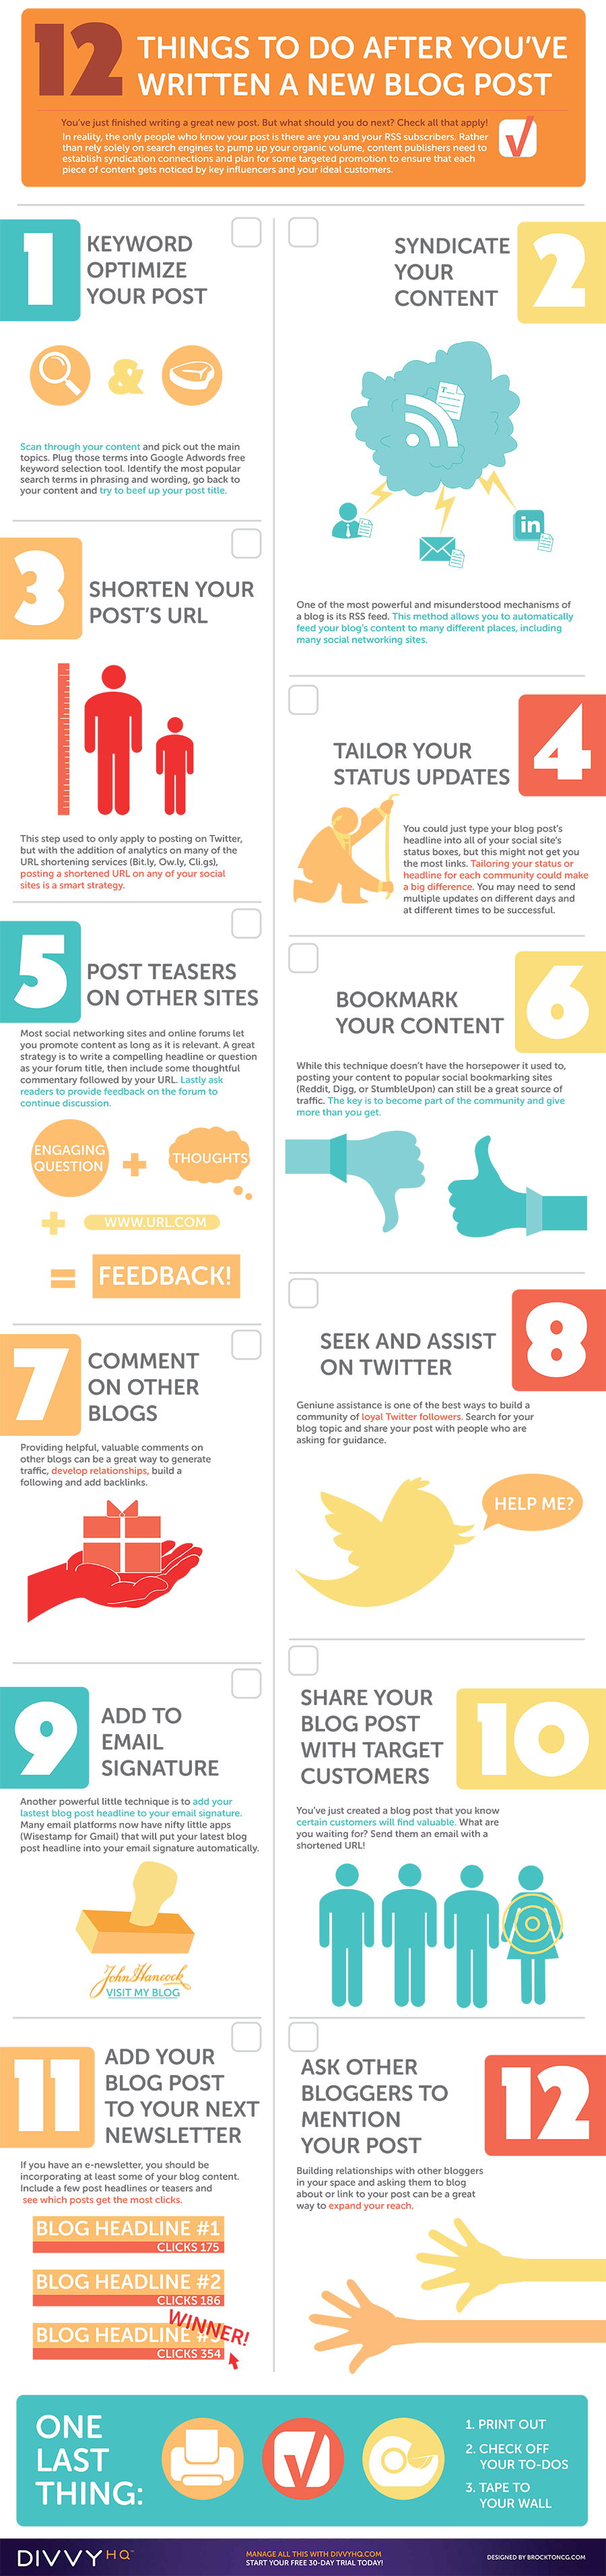 Infographic outlines 12 blog promotion tips